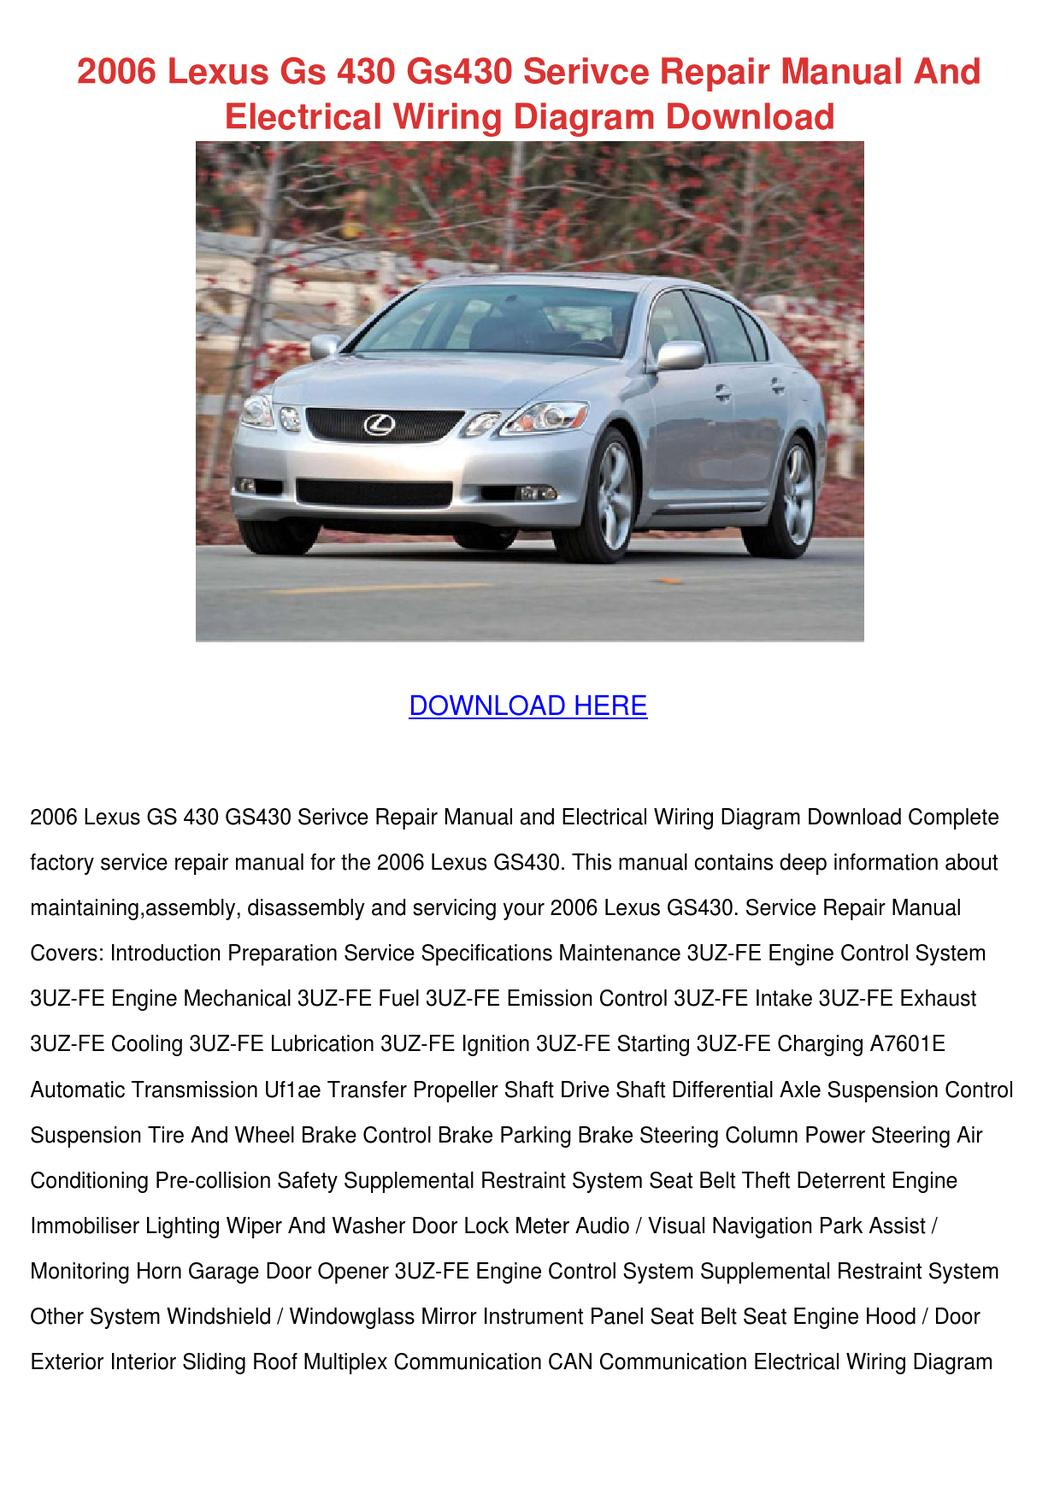 2006 lexus gs 430 gs430 serivce repair manual by trinh ... 2006 lexus gs430 wiring diagram #2